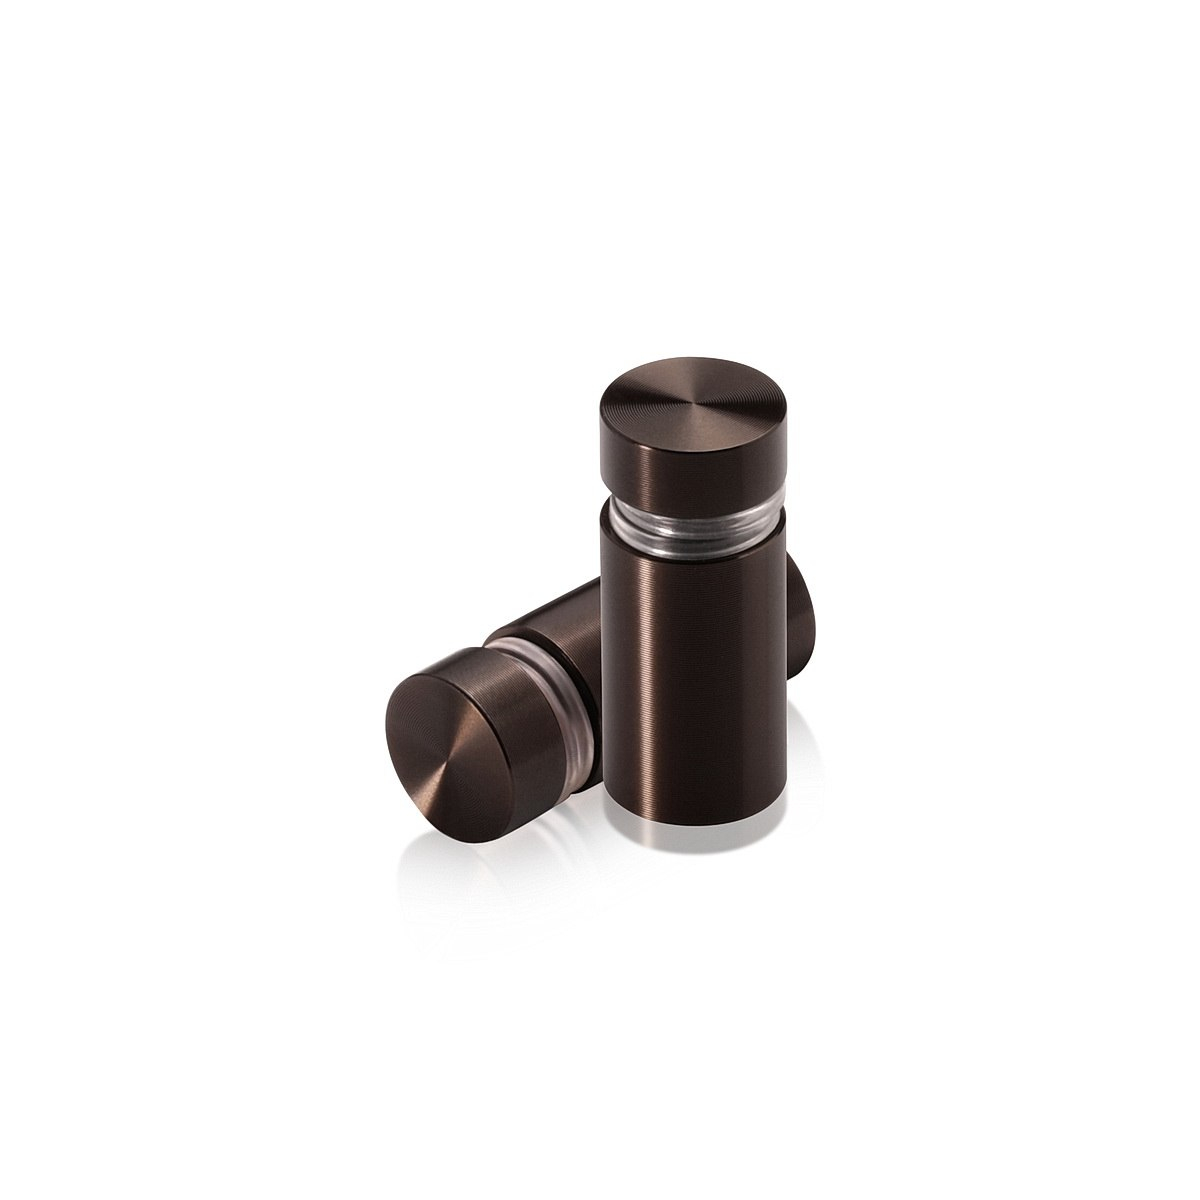 Tamper Proof Aluminum Flat Head Standoffs, Diameter: 1/2'', Standoff: 3/4'', Bronze Anodized Finish